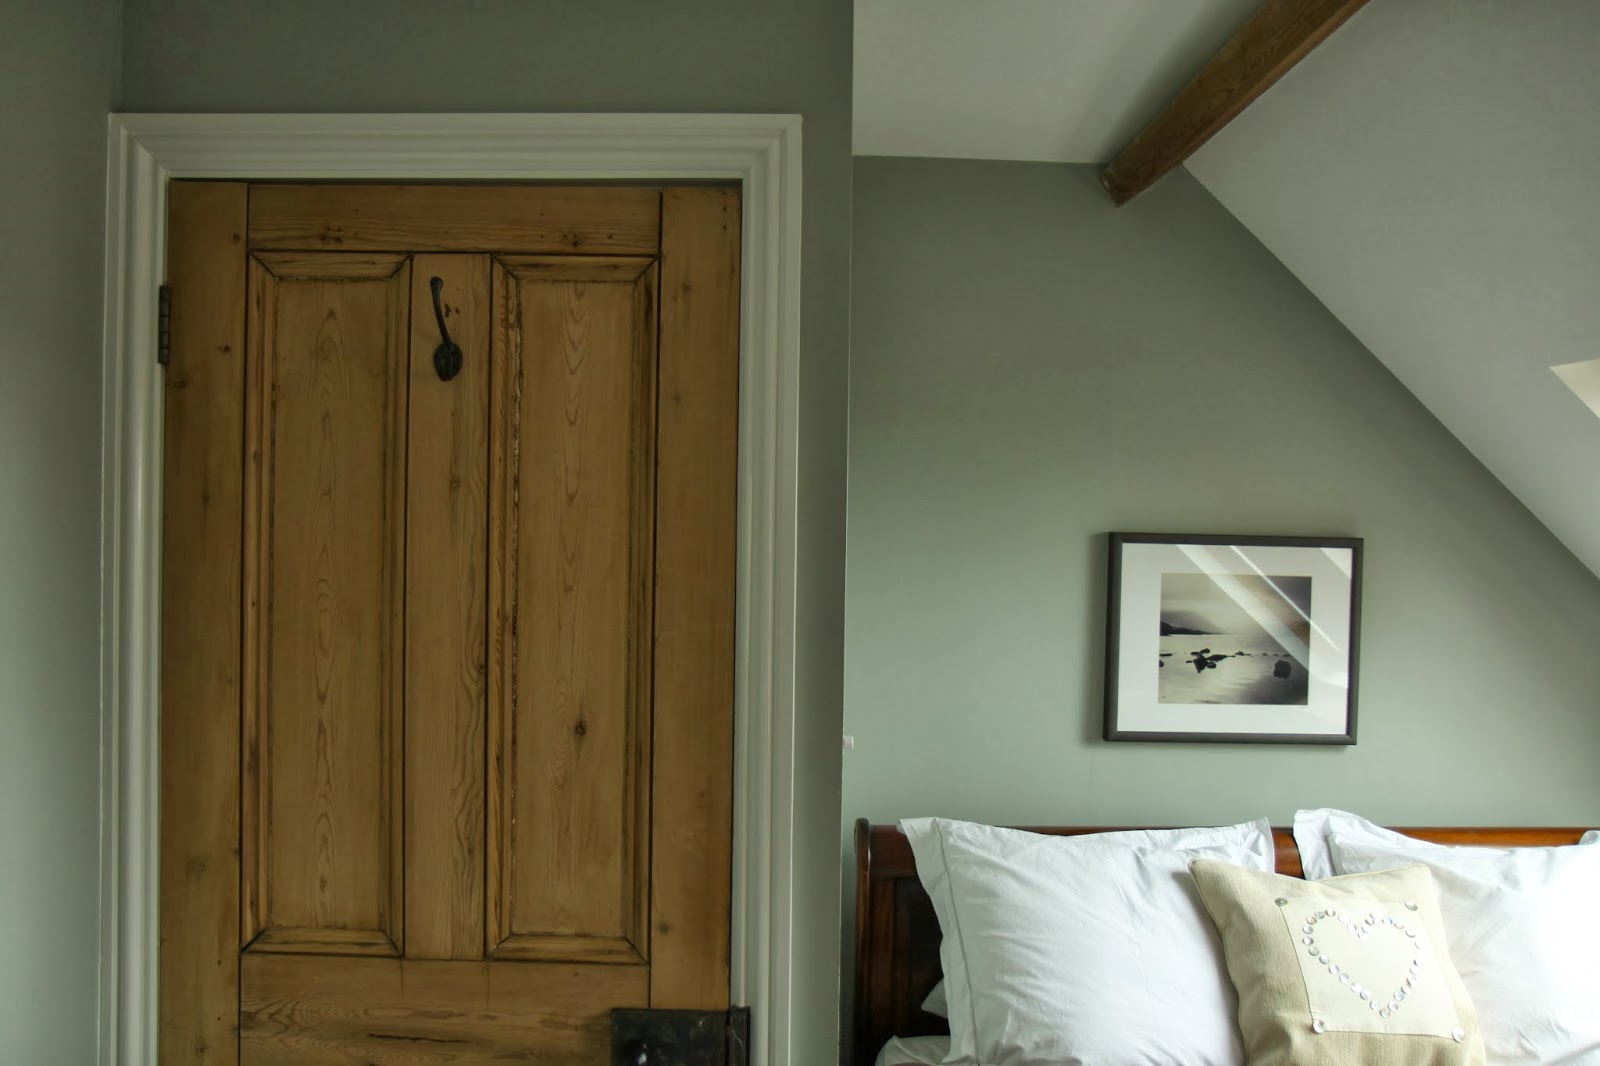 Farrow And Ball Light Blue.Modern Country Style Farrow And Ball Light Blue Case Study